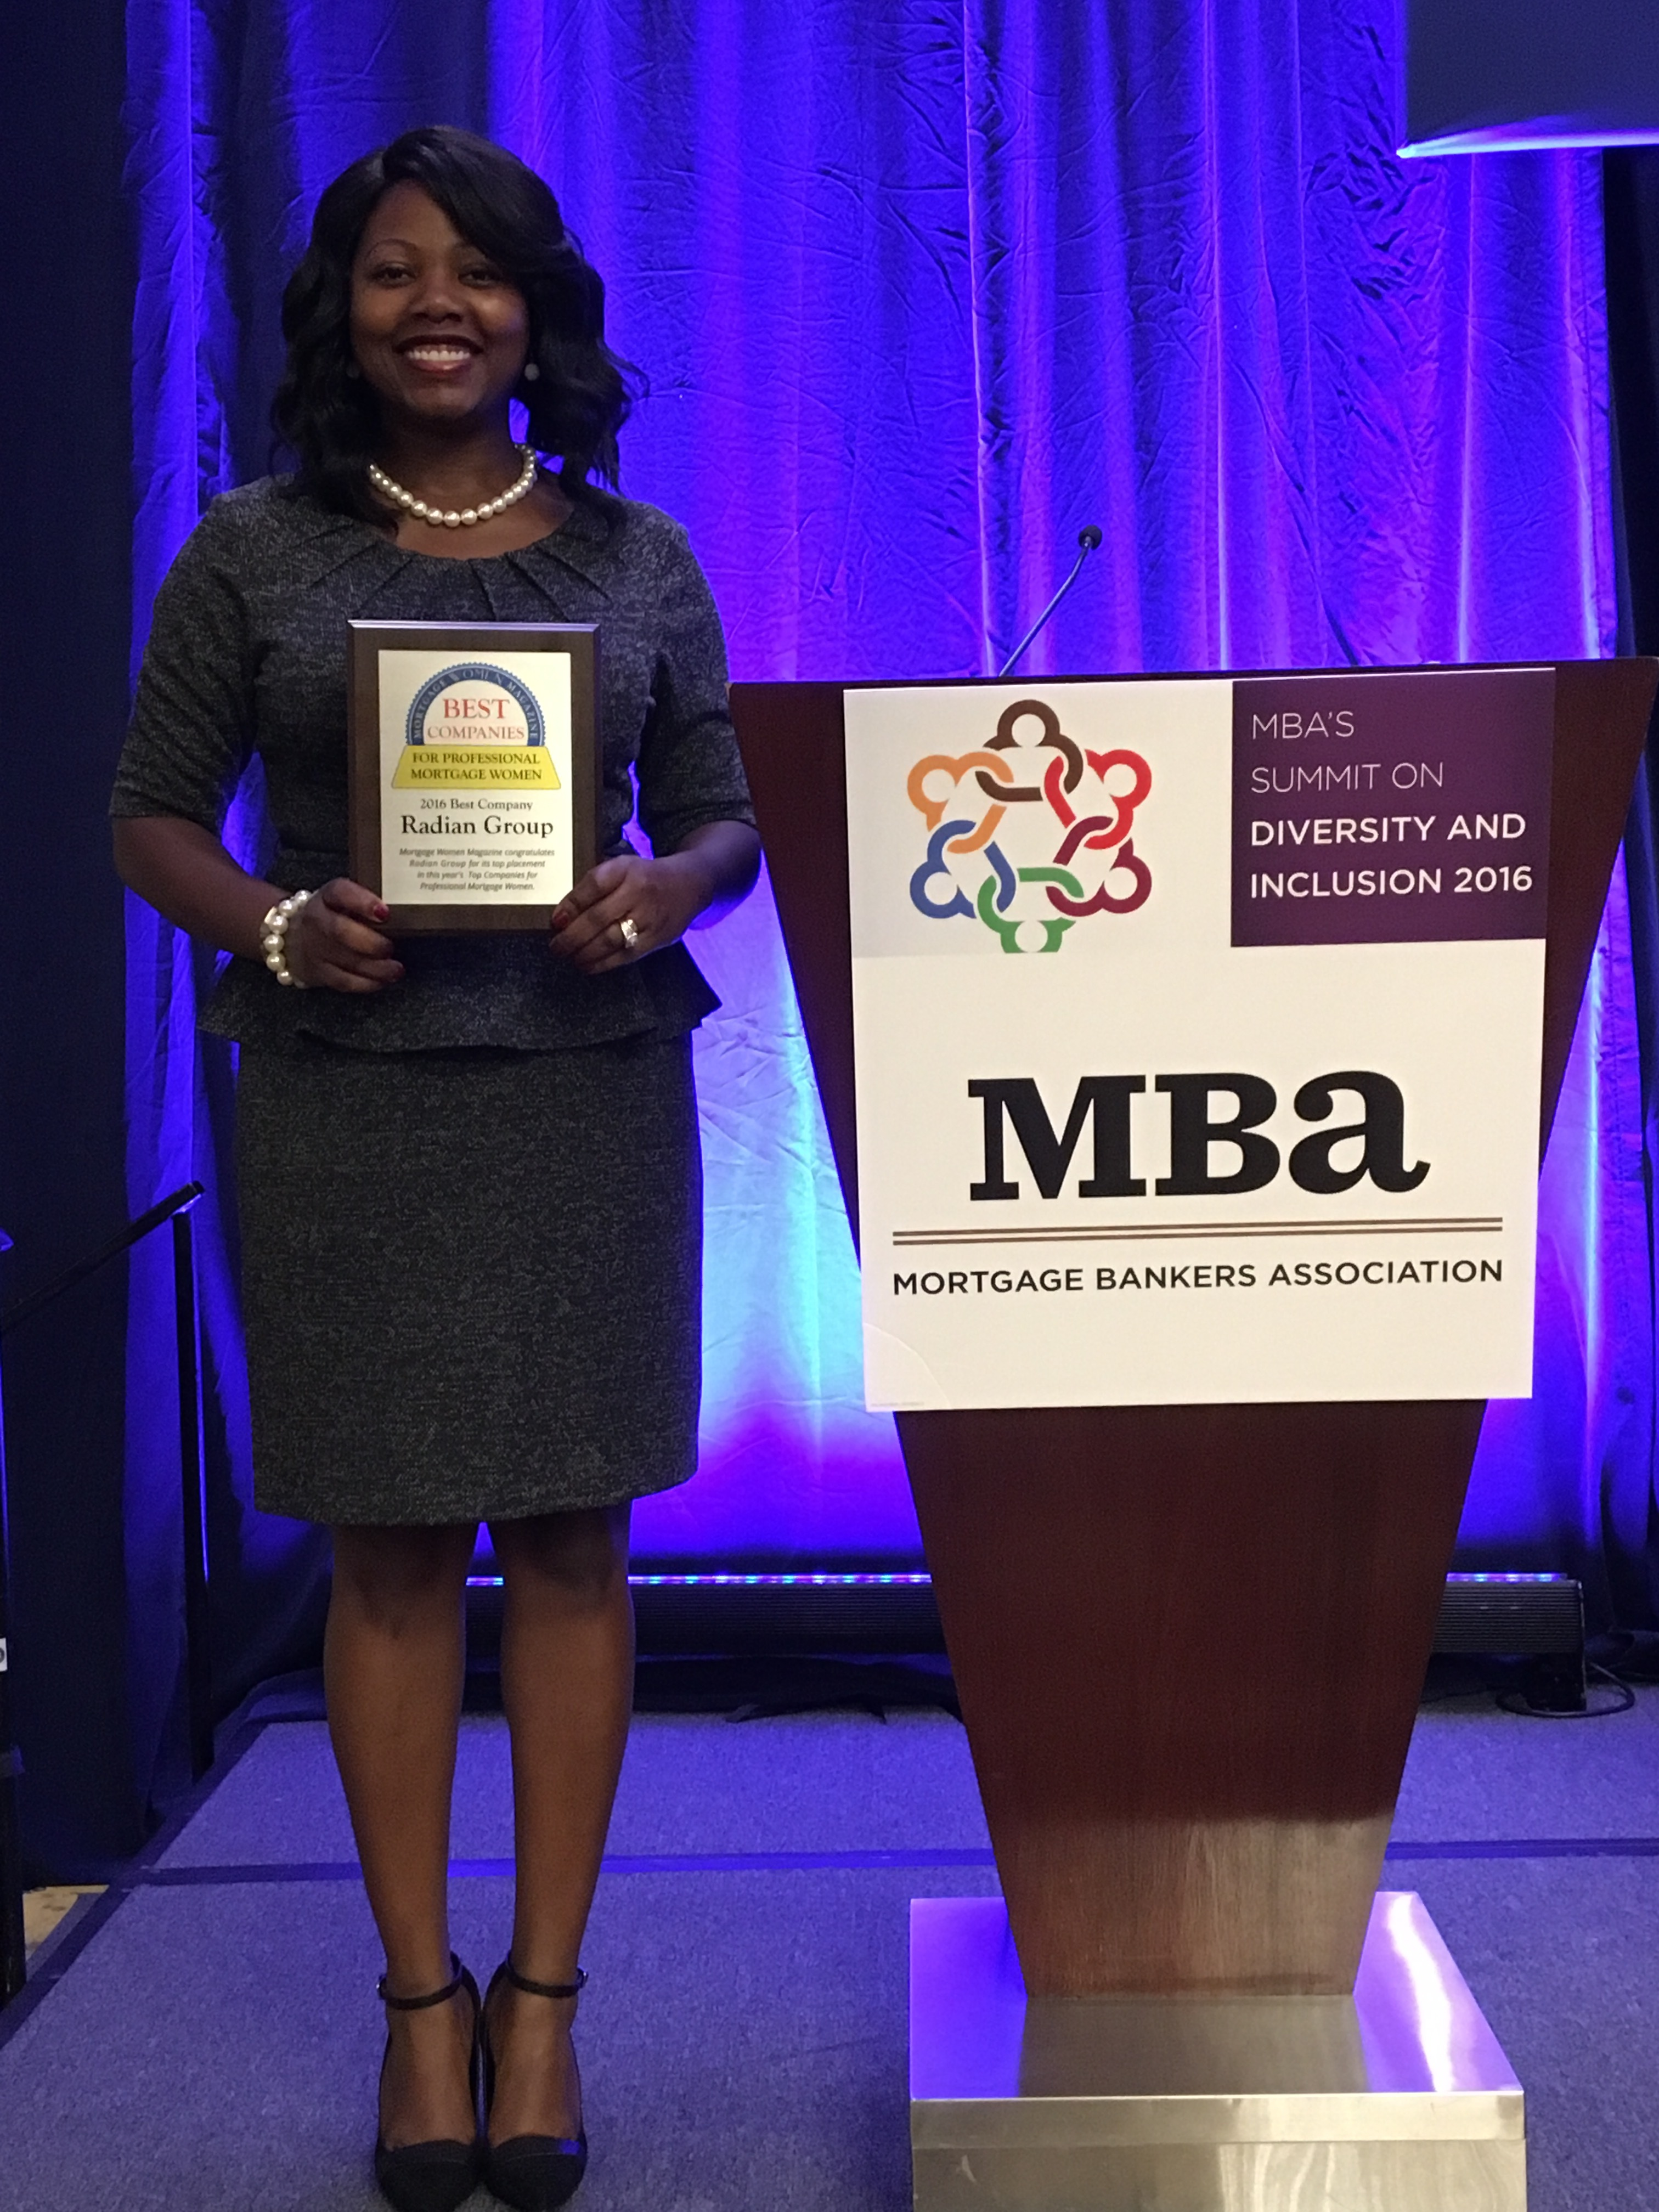 MJ Watkins, Multicultural Business Manager, Asian & African American Segments, receives the Best Company for Professional Women Award on behalf of Radian. (Photo: Business Wire)